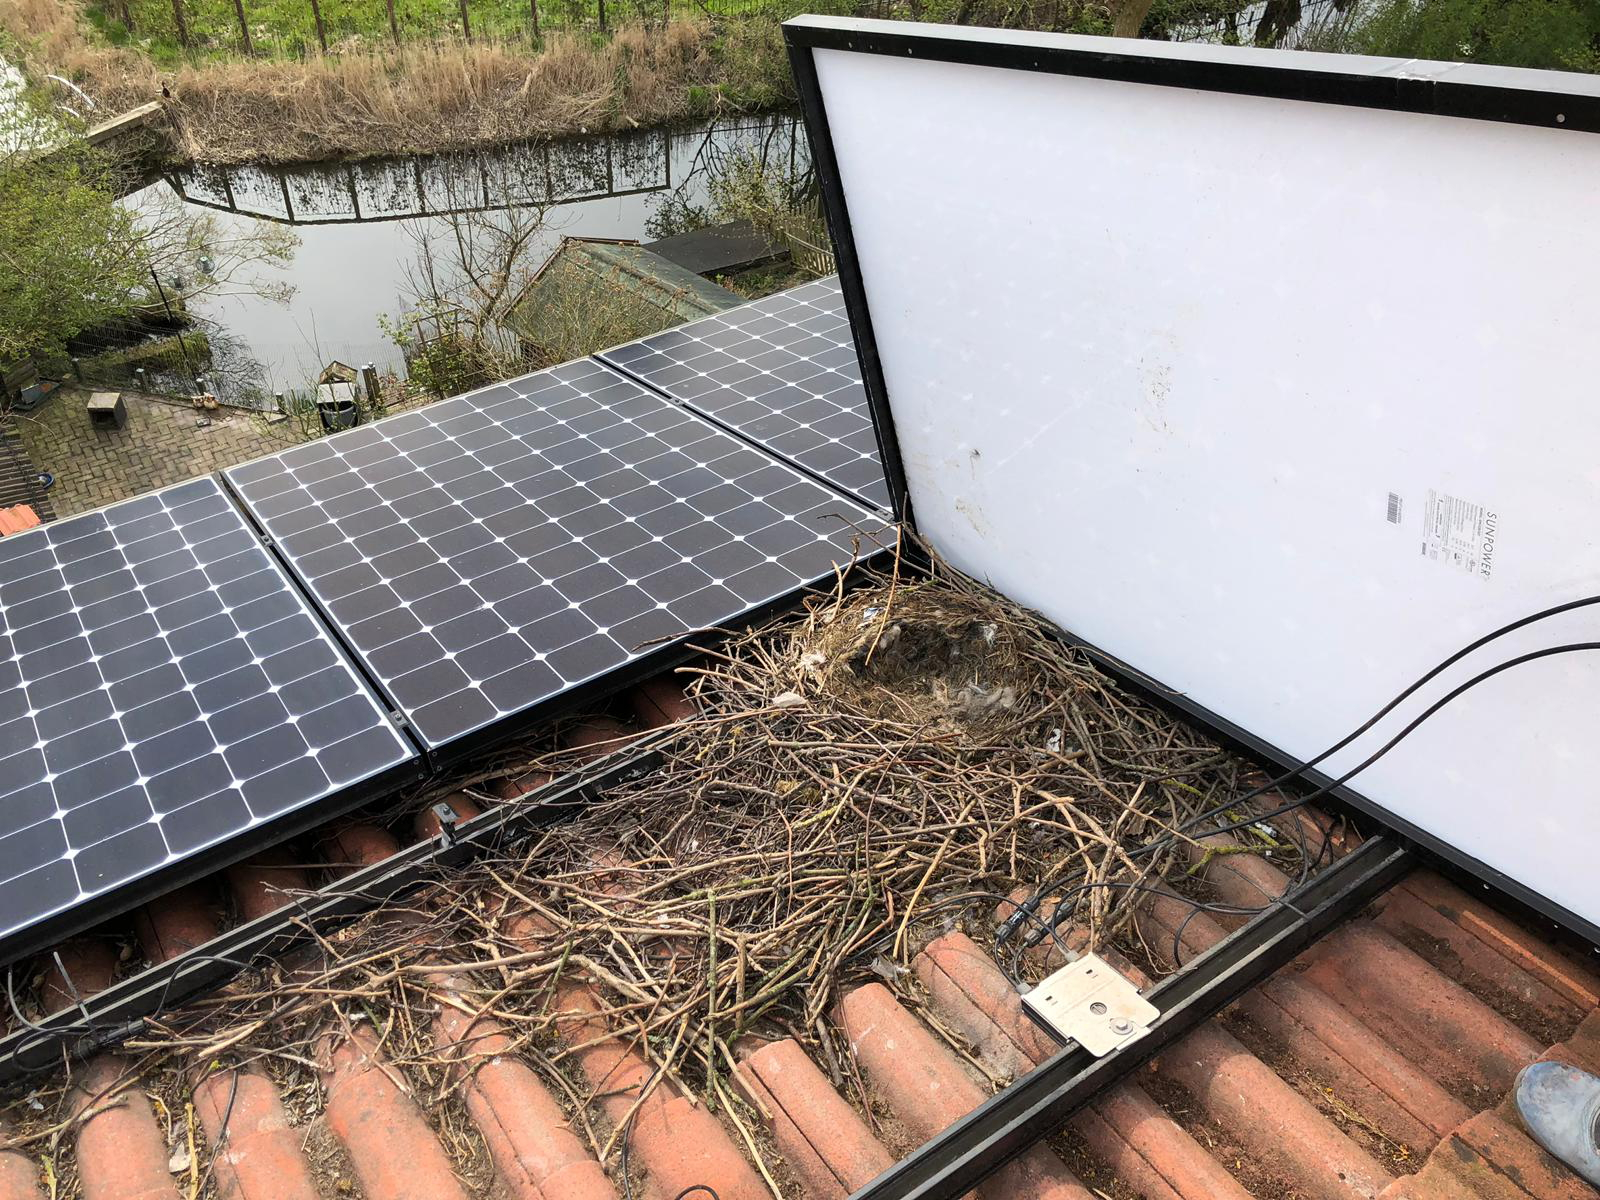 Rooftop PV panels need to be protected against birds, which can nest under an array, causing the output from the panels to decrease when the natural ventilation beneath the panels is restricted by twigs and other nest material. Image: Van der Valk Solar Systems